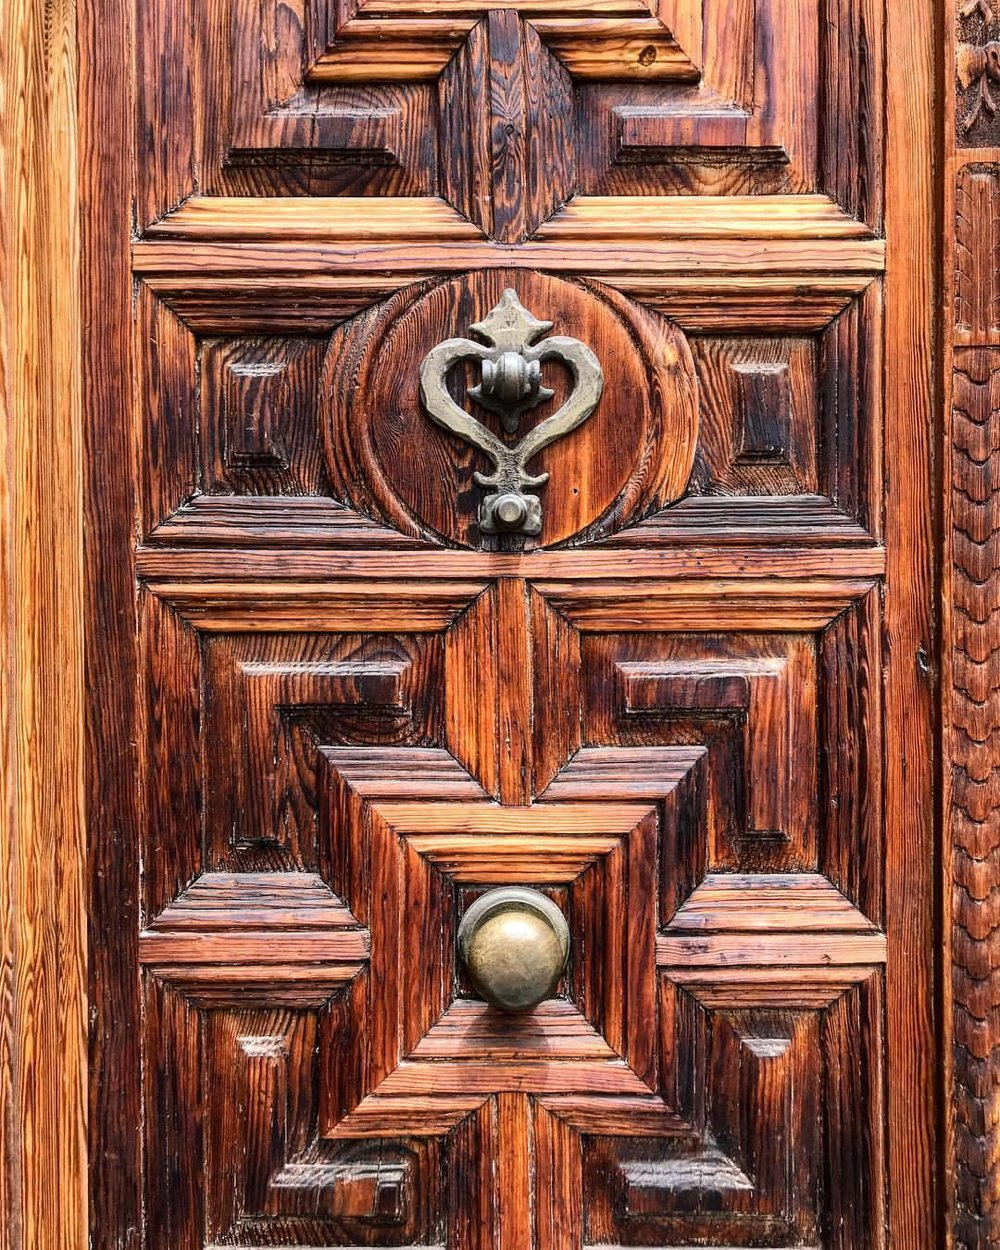 Door.  -  #spain #madrid #woodwork #imasuckerforwoodgrain  (at Madrid, Spain)